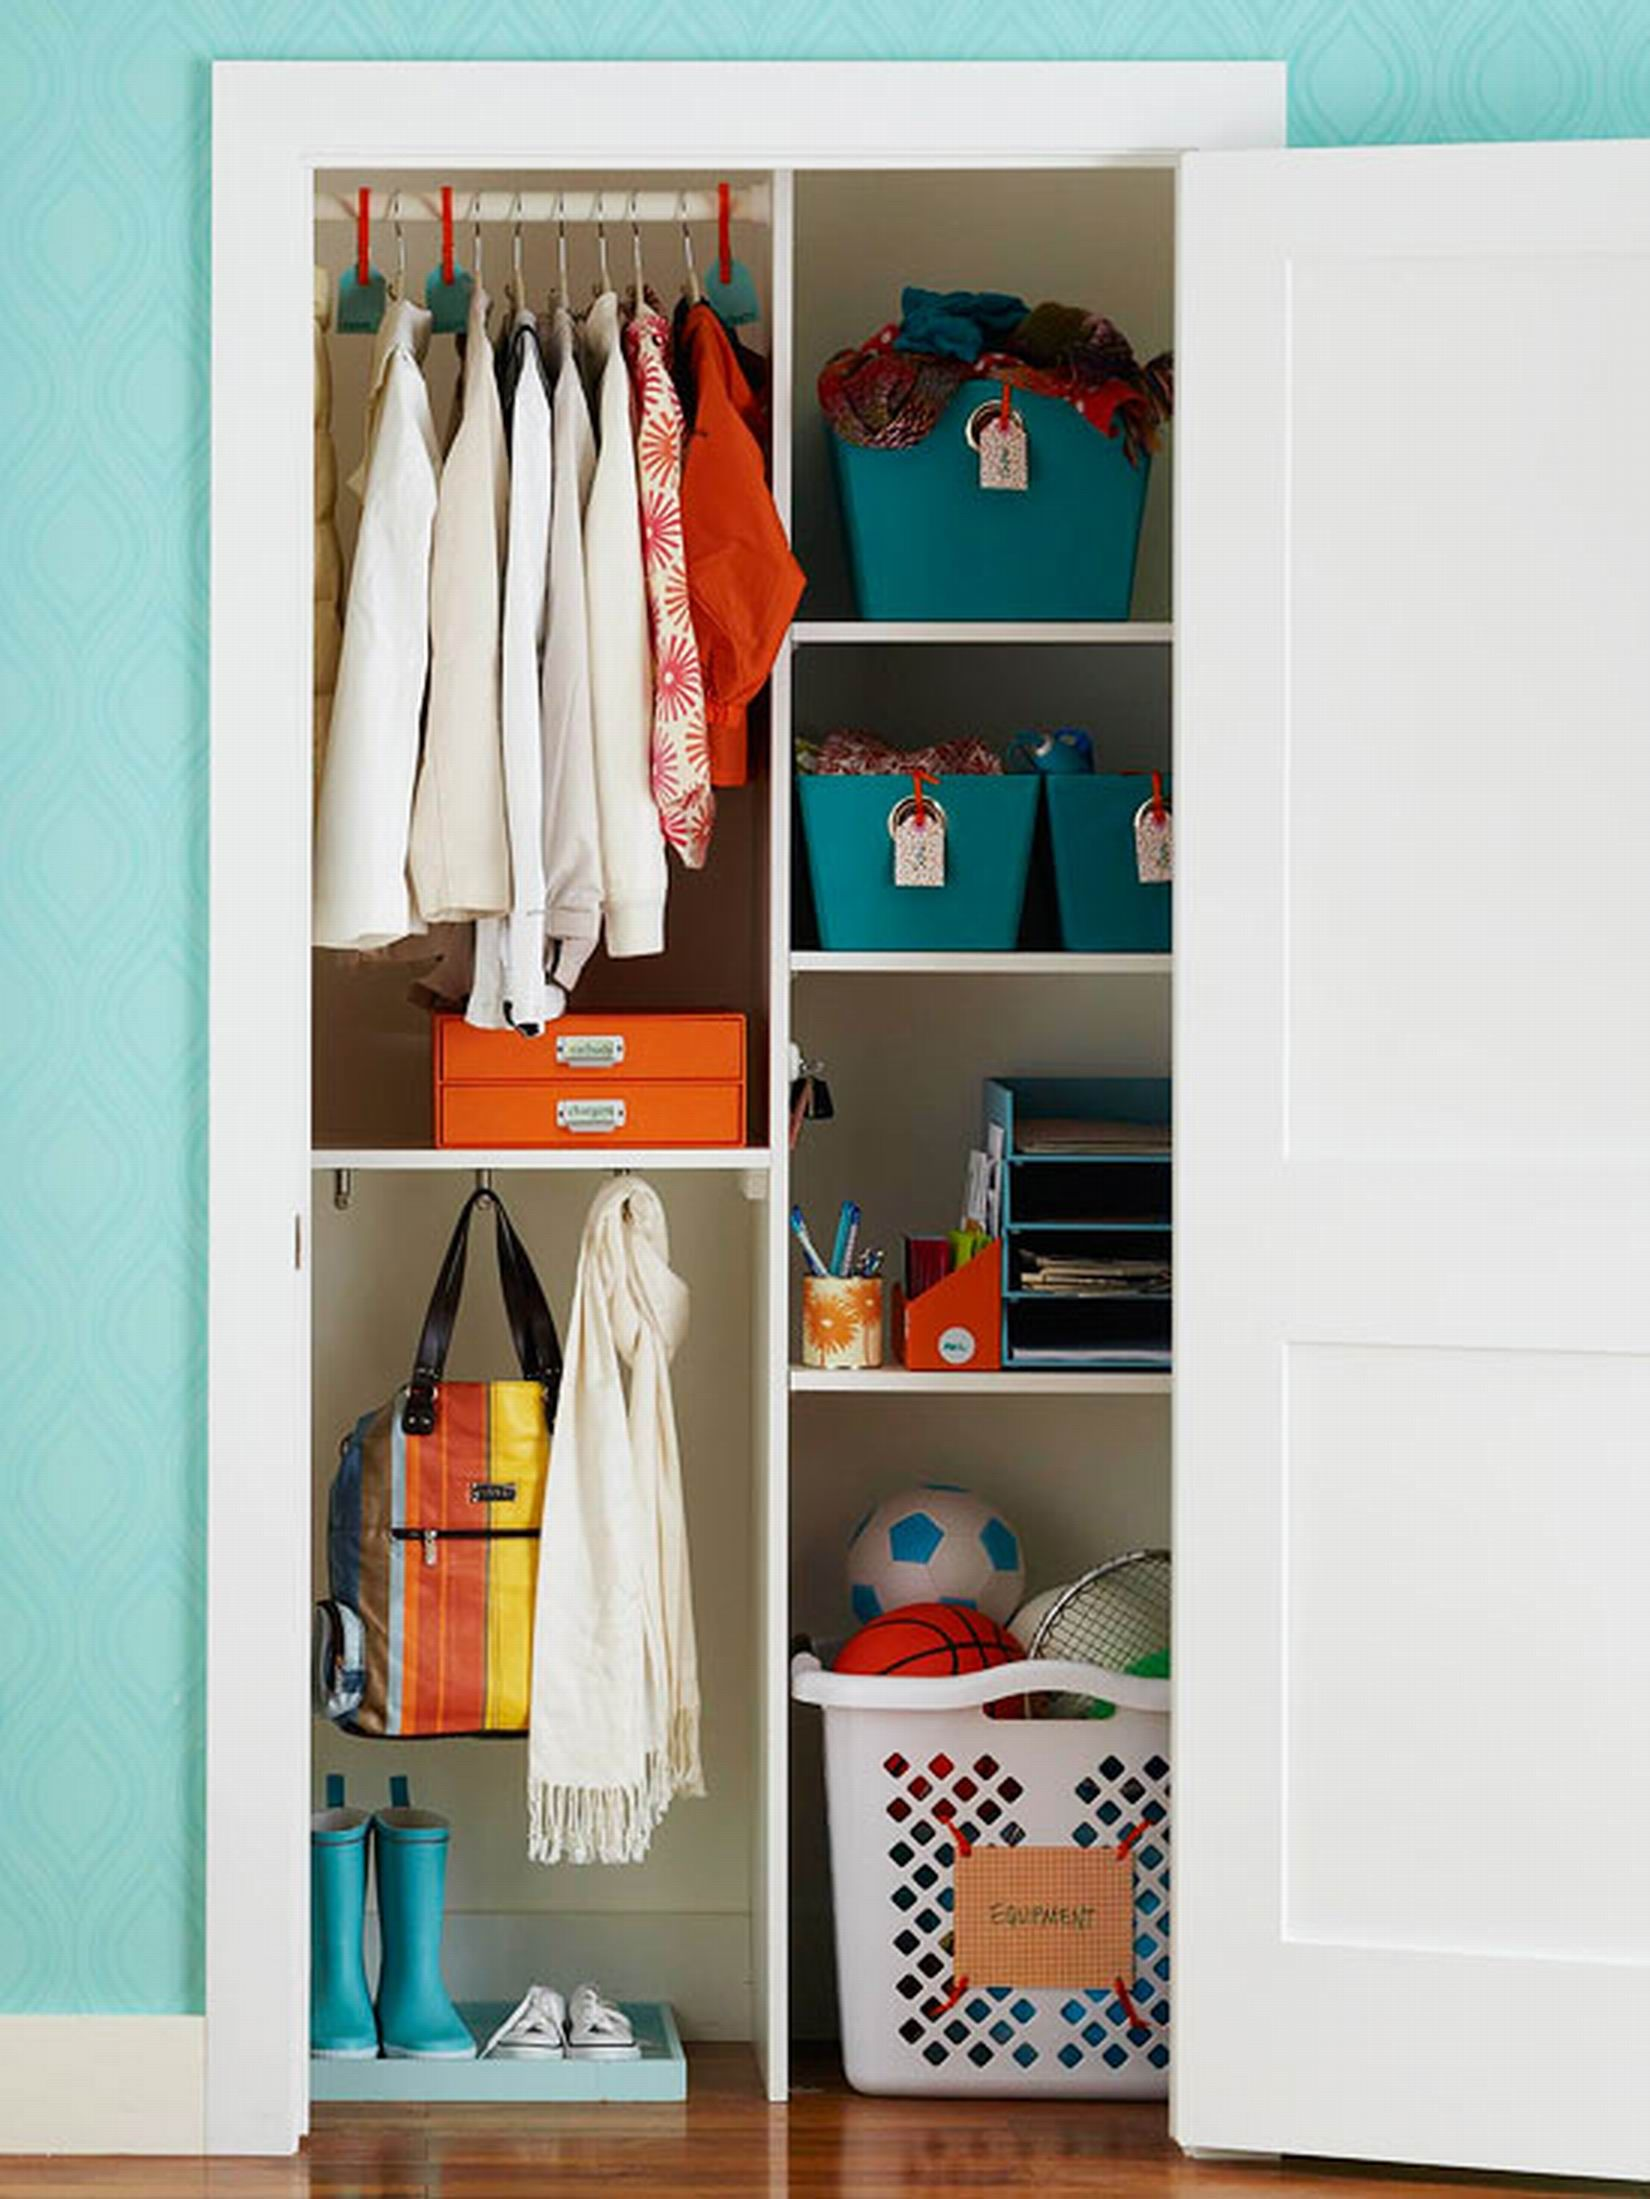 Coat Closet Organization Ideas Part - 17: Is Your Coat Closet Small And Cluttered? Turn Your Messy Coat Closet Into  An Organized Space With The Help Of These 11 Coat Closet Ideas!